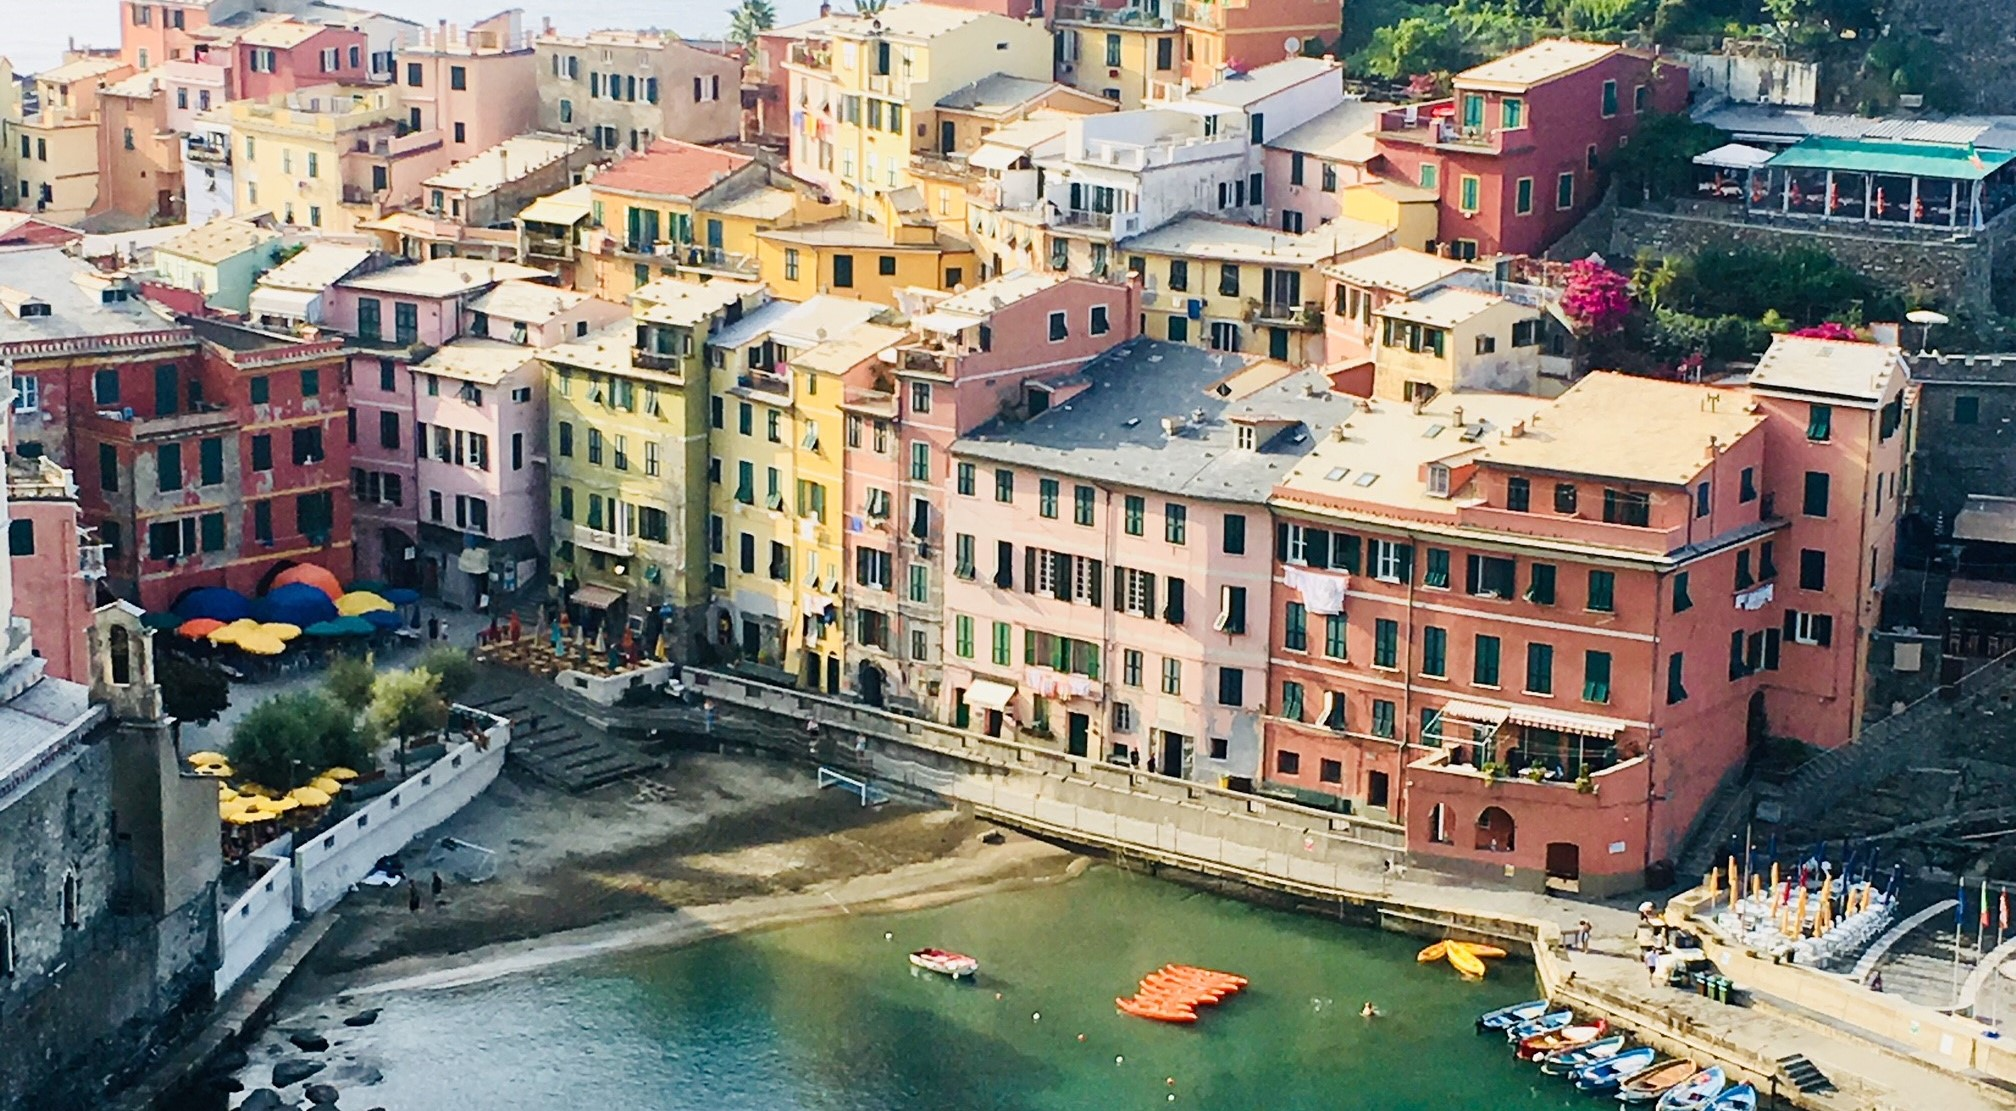 Top five things to do in Cinque Terre, Italy